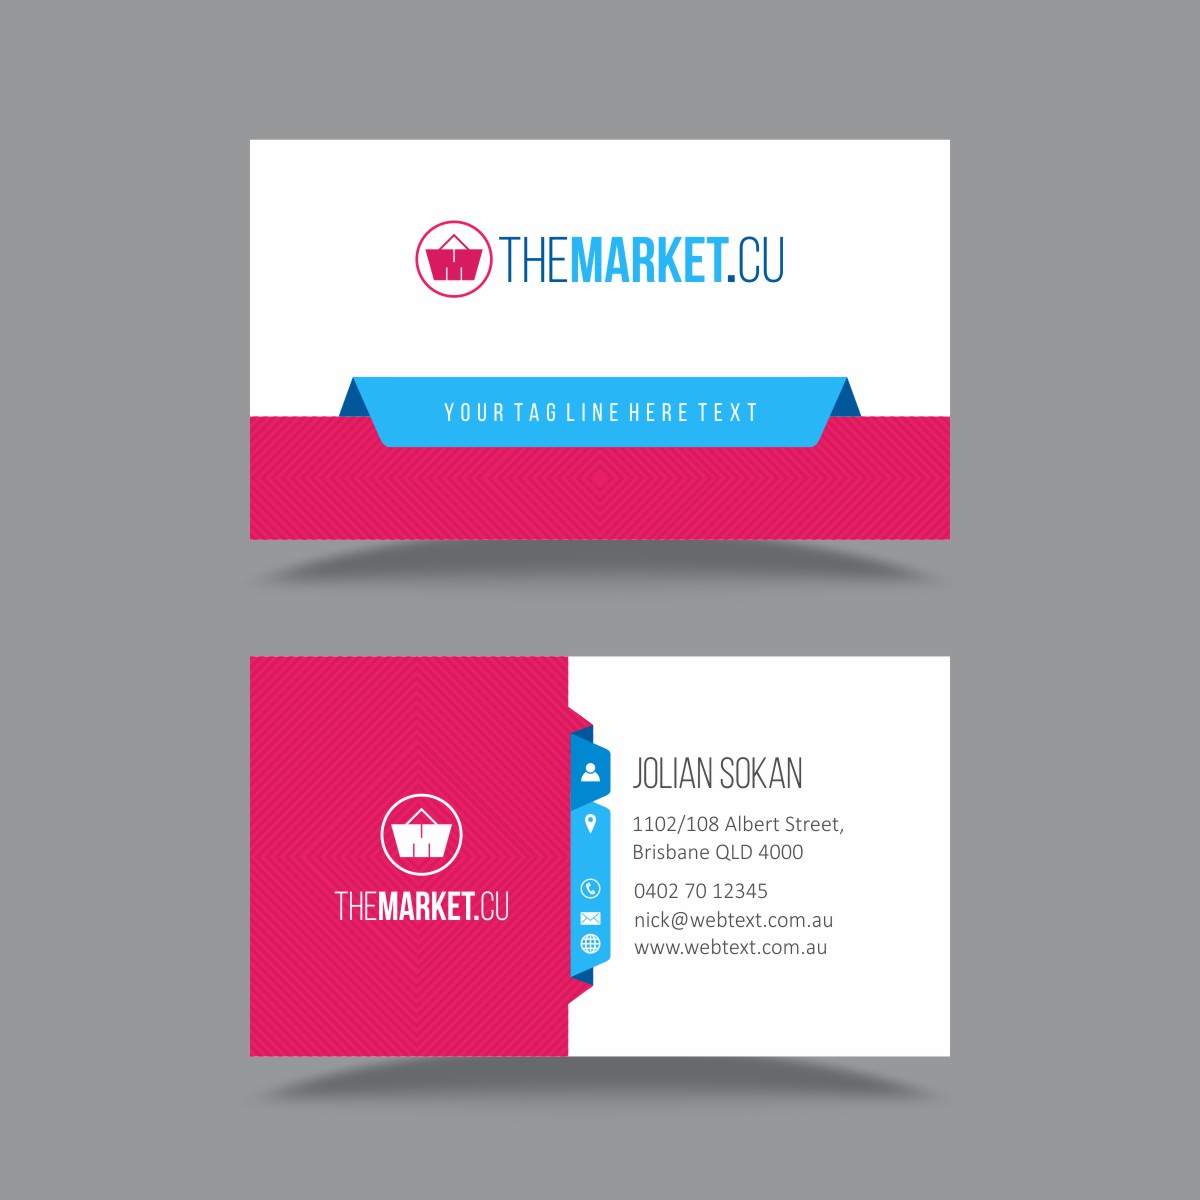 Ecommerce business card template online logo makers blog ecommerce business card template fbccfo